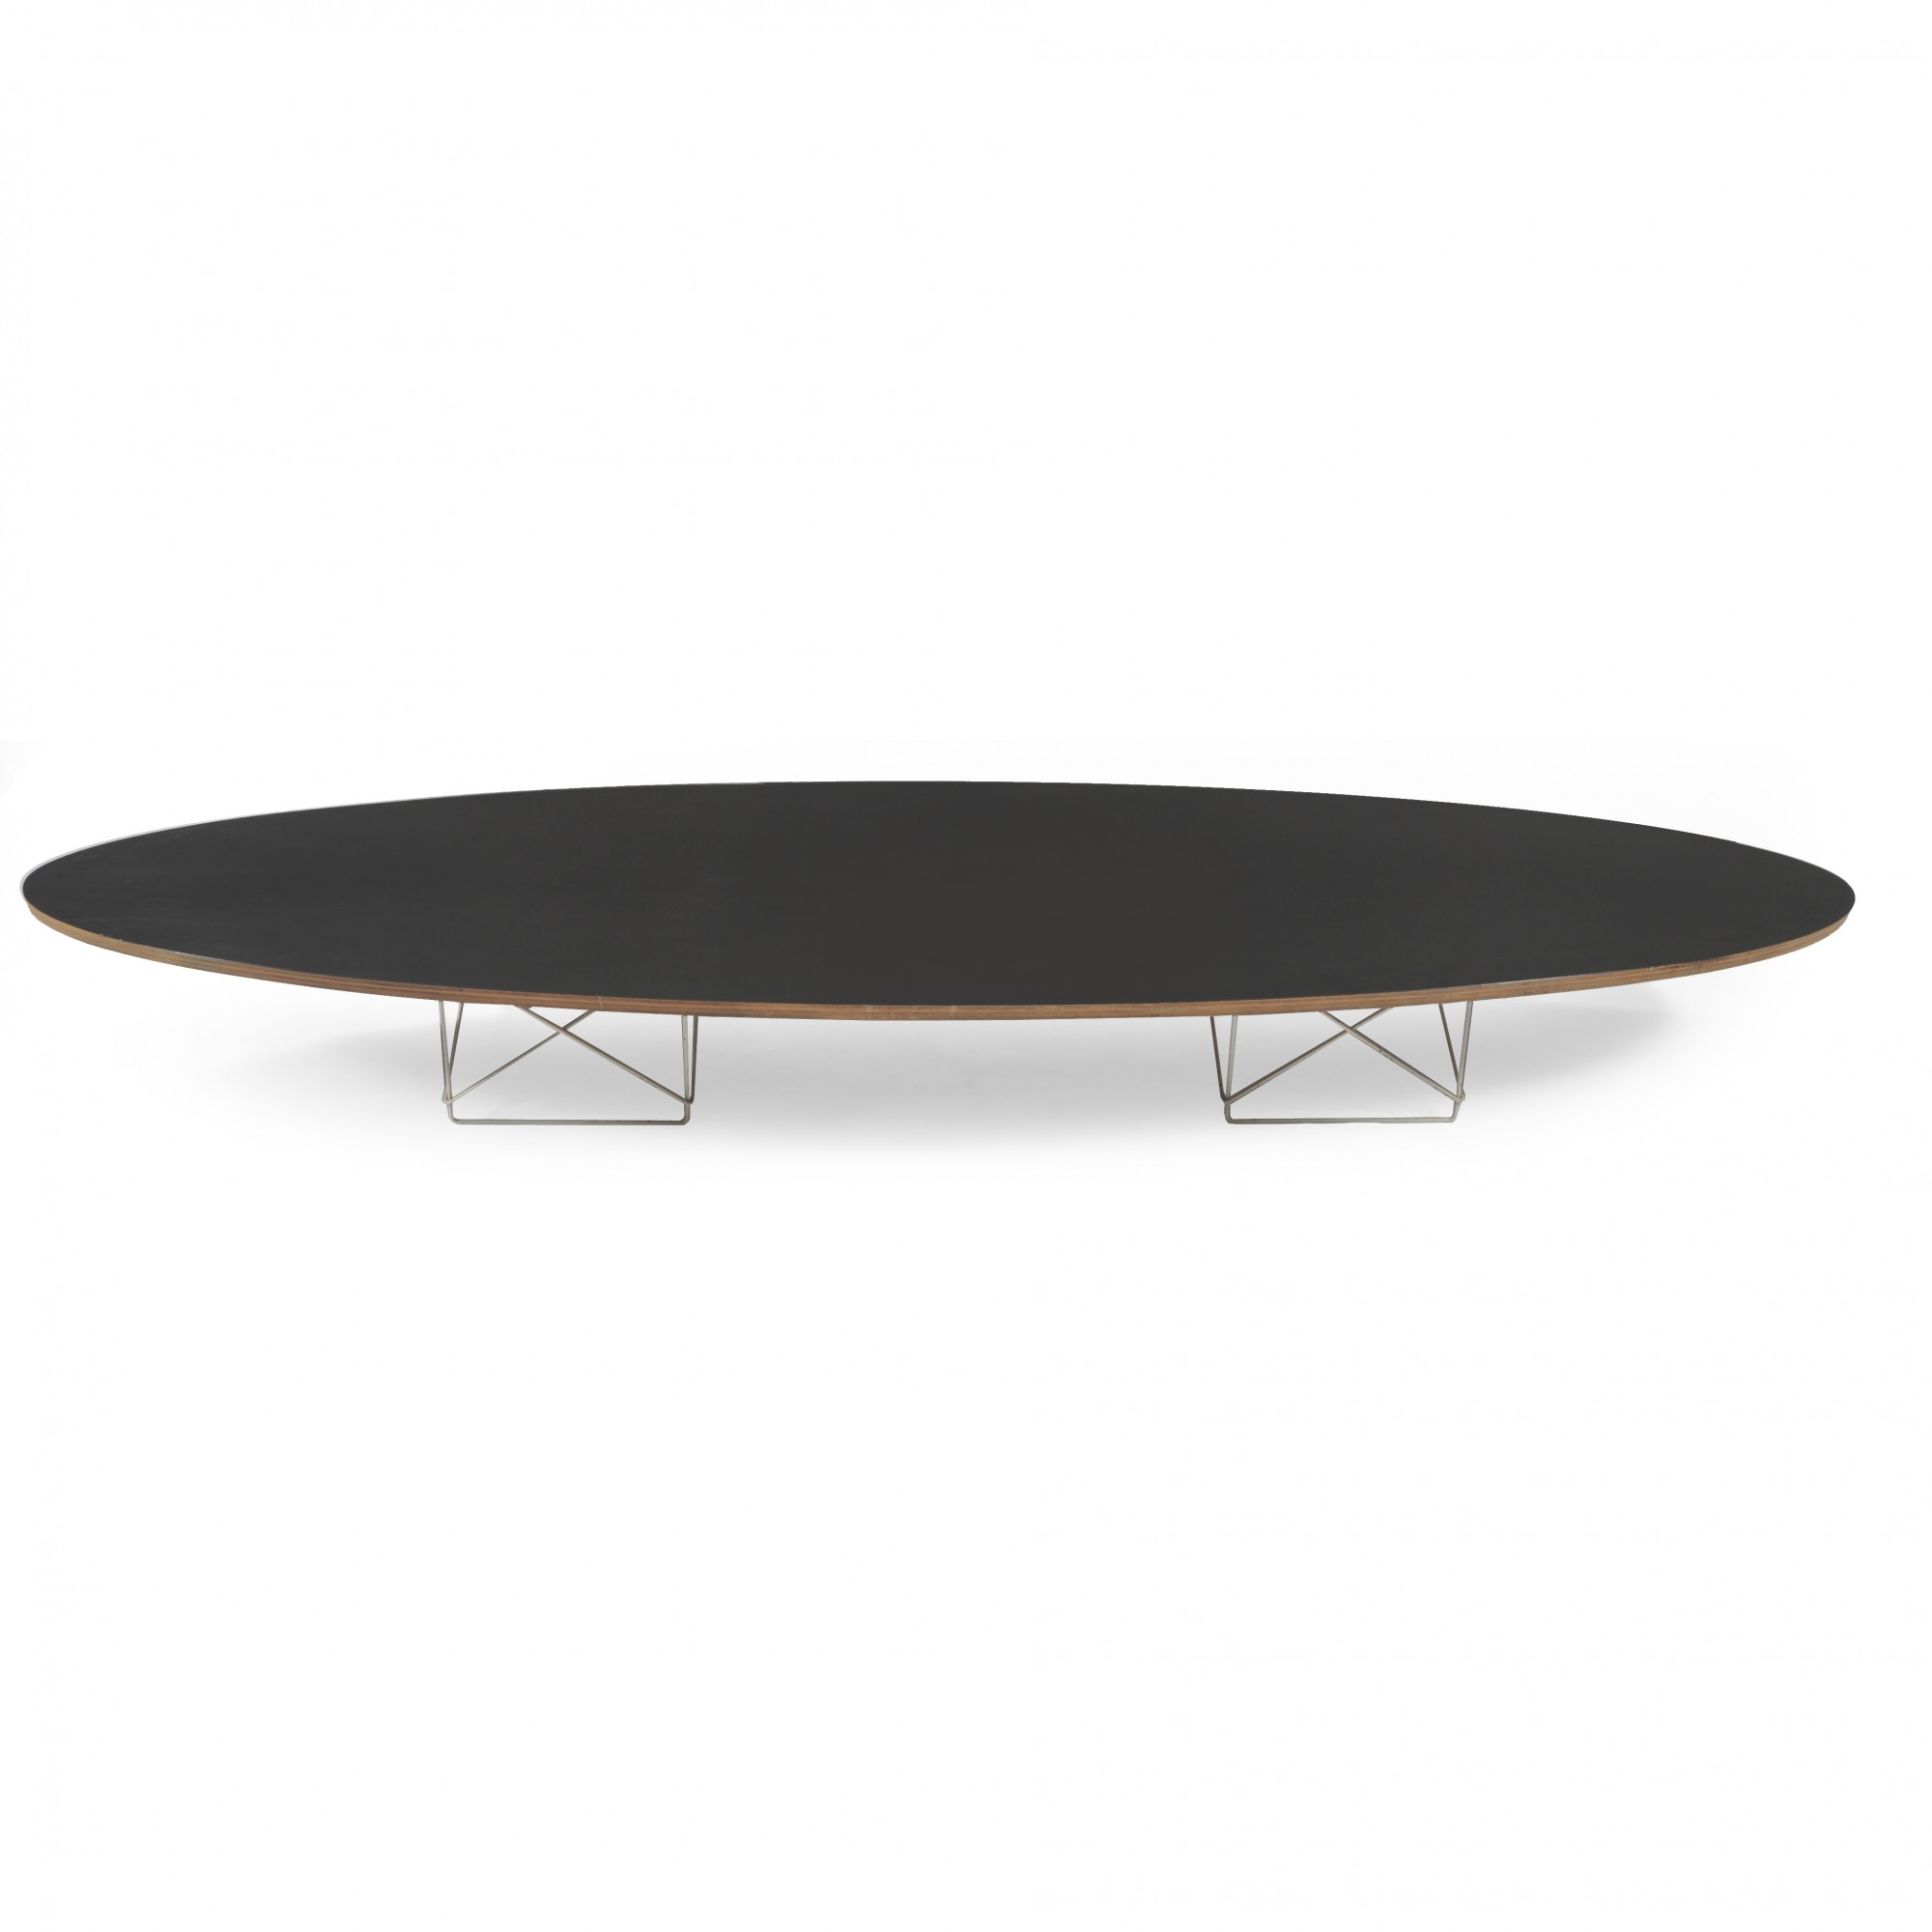 Eames Surfboard Table